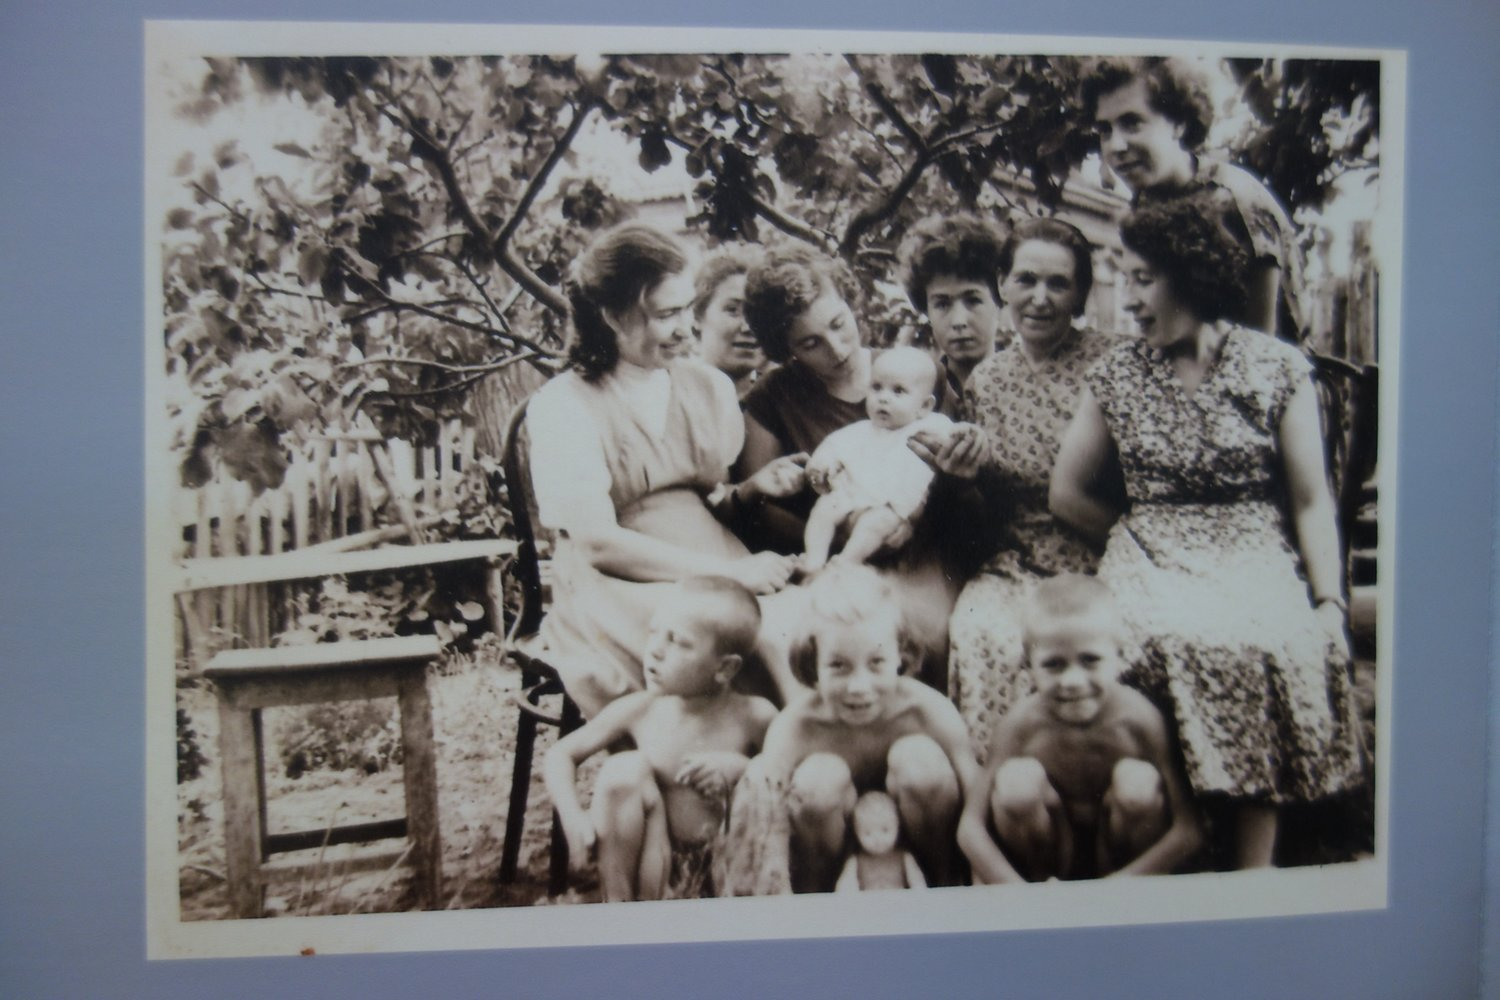 my+granny,+my+aunts,+my+mother,+their+children.jpeg